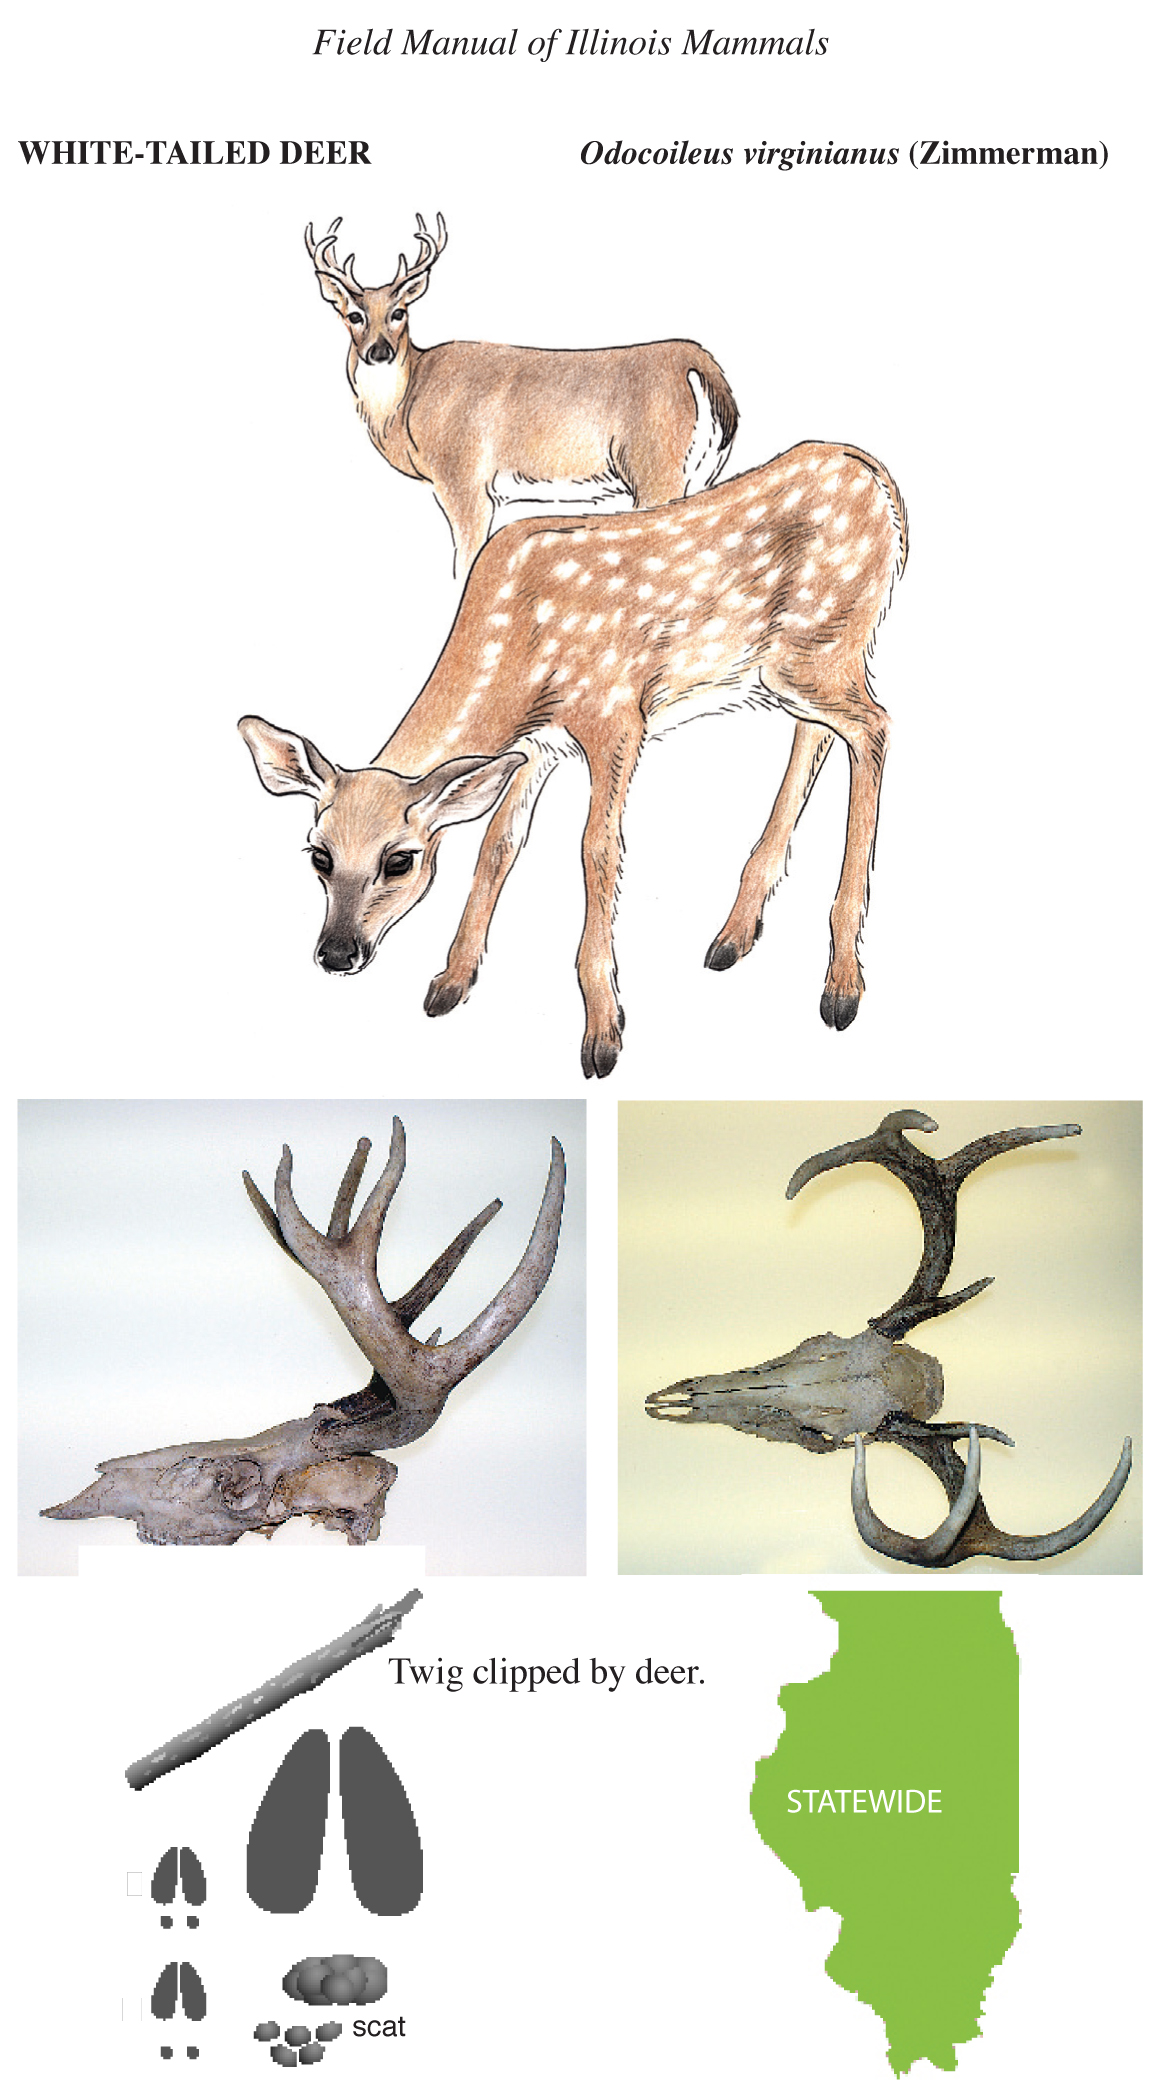 illustration of white-tailed deer, skull images, hoofprints, and distribution map